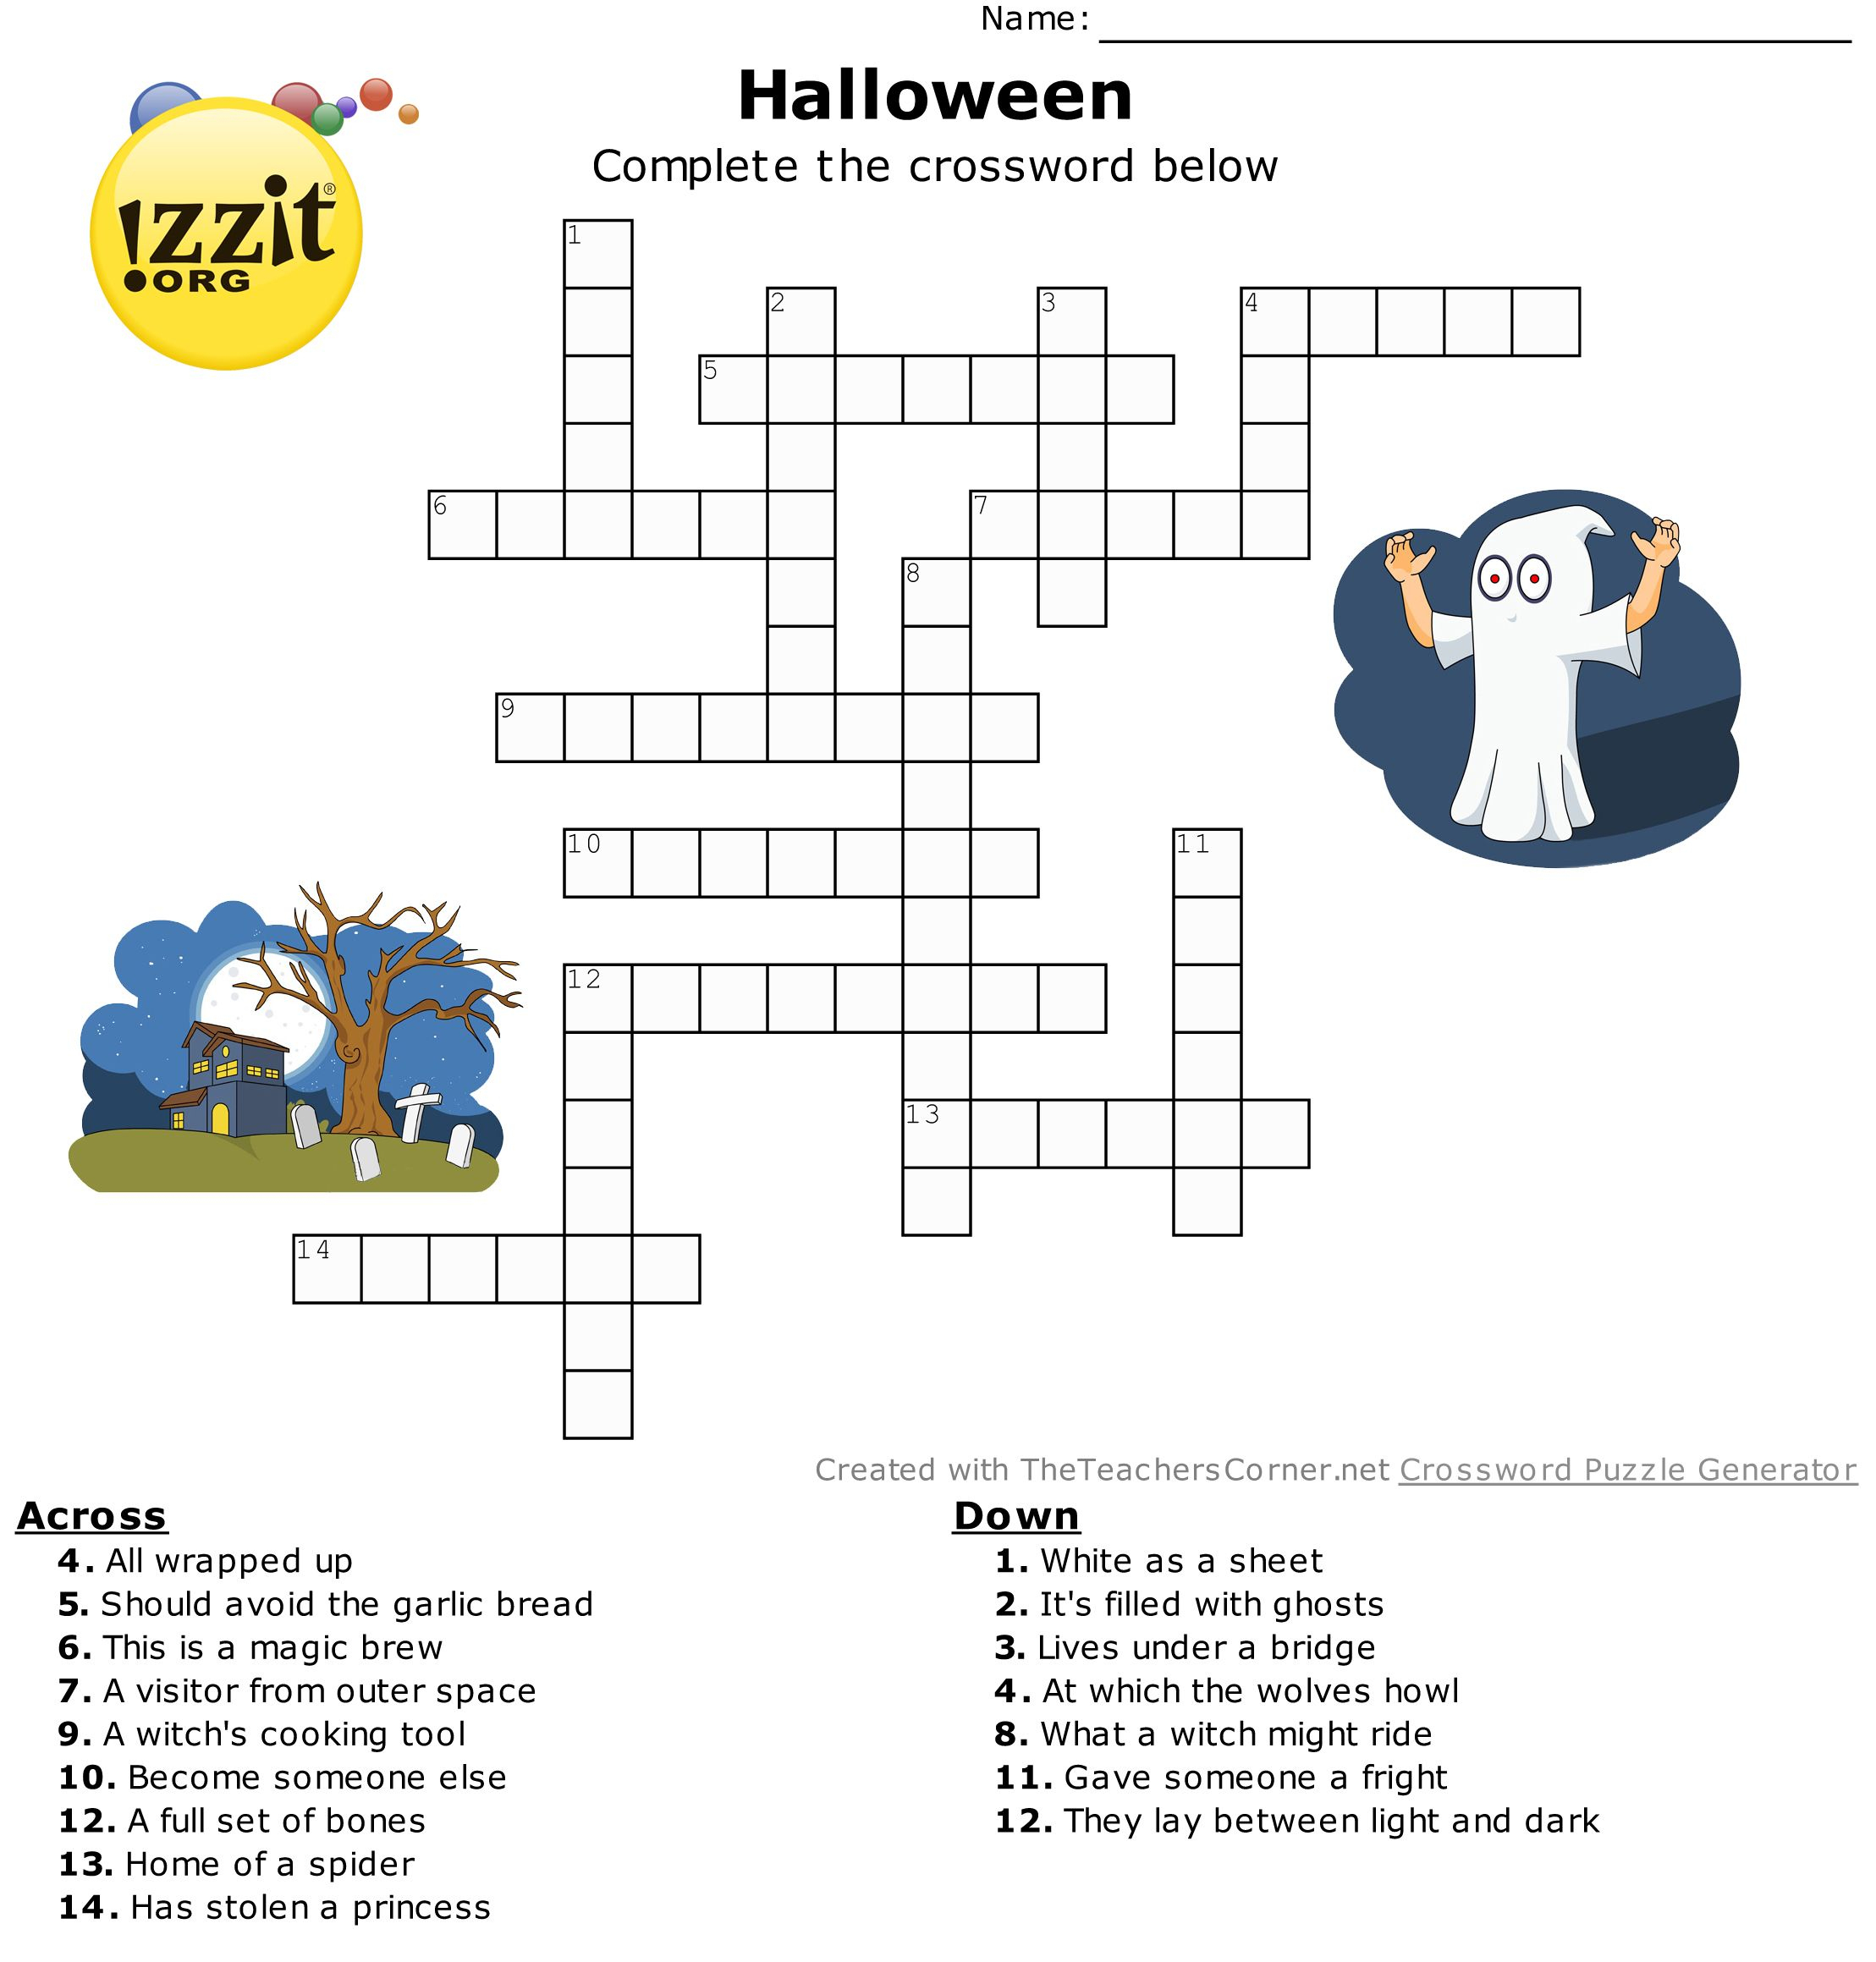 Halloween Crossword - Hard #happyhalloween 💀👻🎃 | Classroom - Hard Halloween Crossword Puzzles Printable